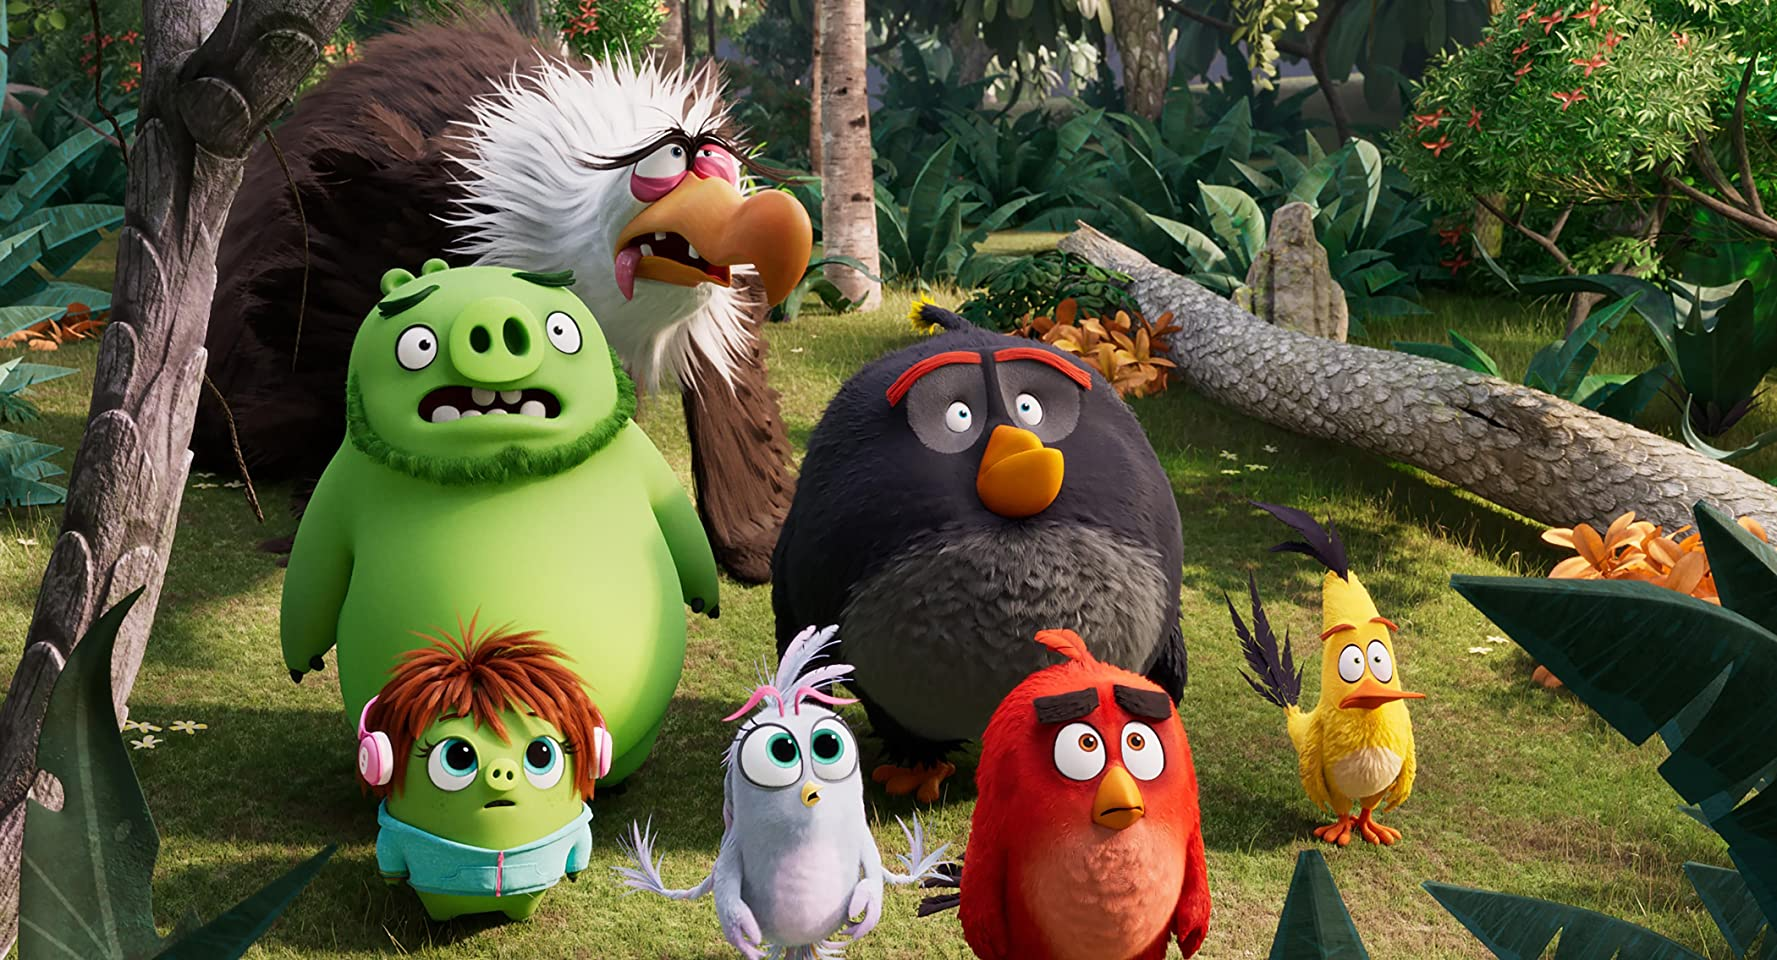 Peter Dinklage, Bill Hader, Jason Sudeikis, Danny McBride, Josh Gad, Rachel Bloom, and Awkwafina in The Angry Birds Movie 2 (2019)